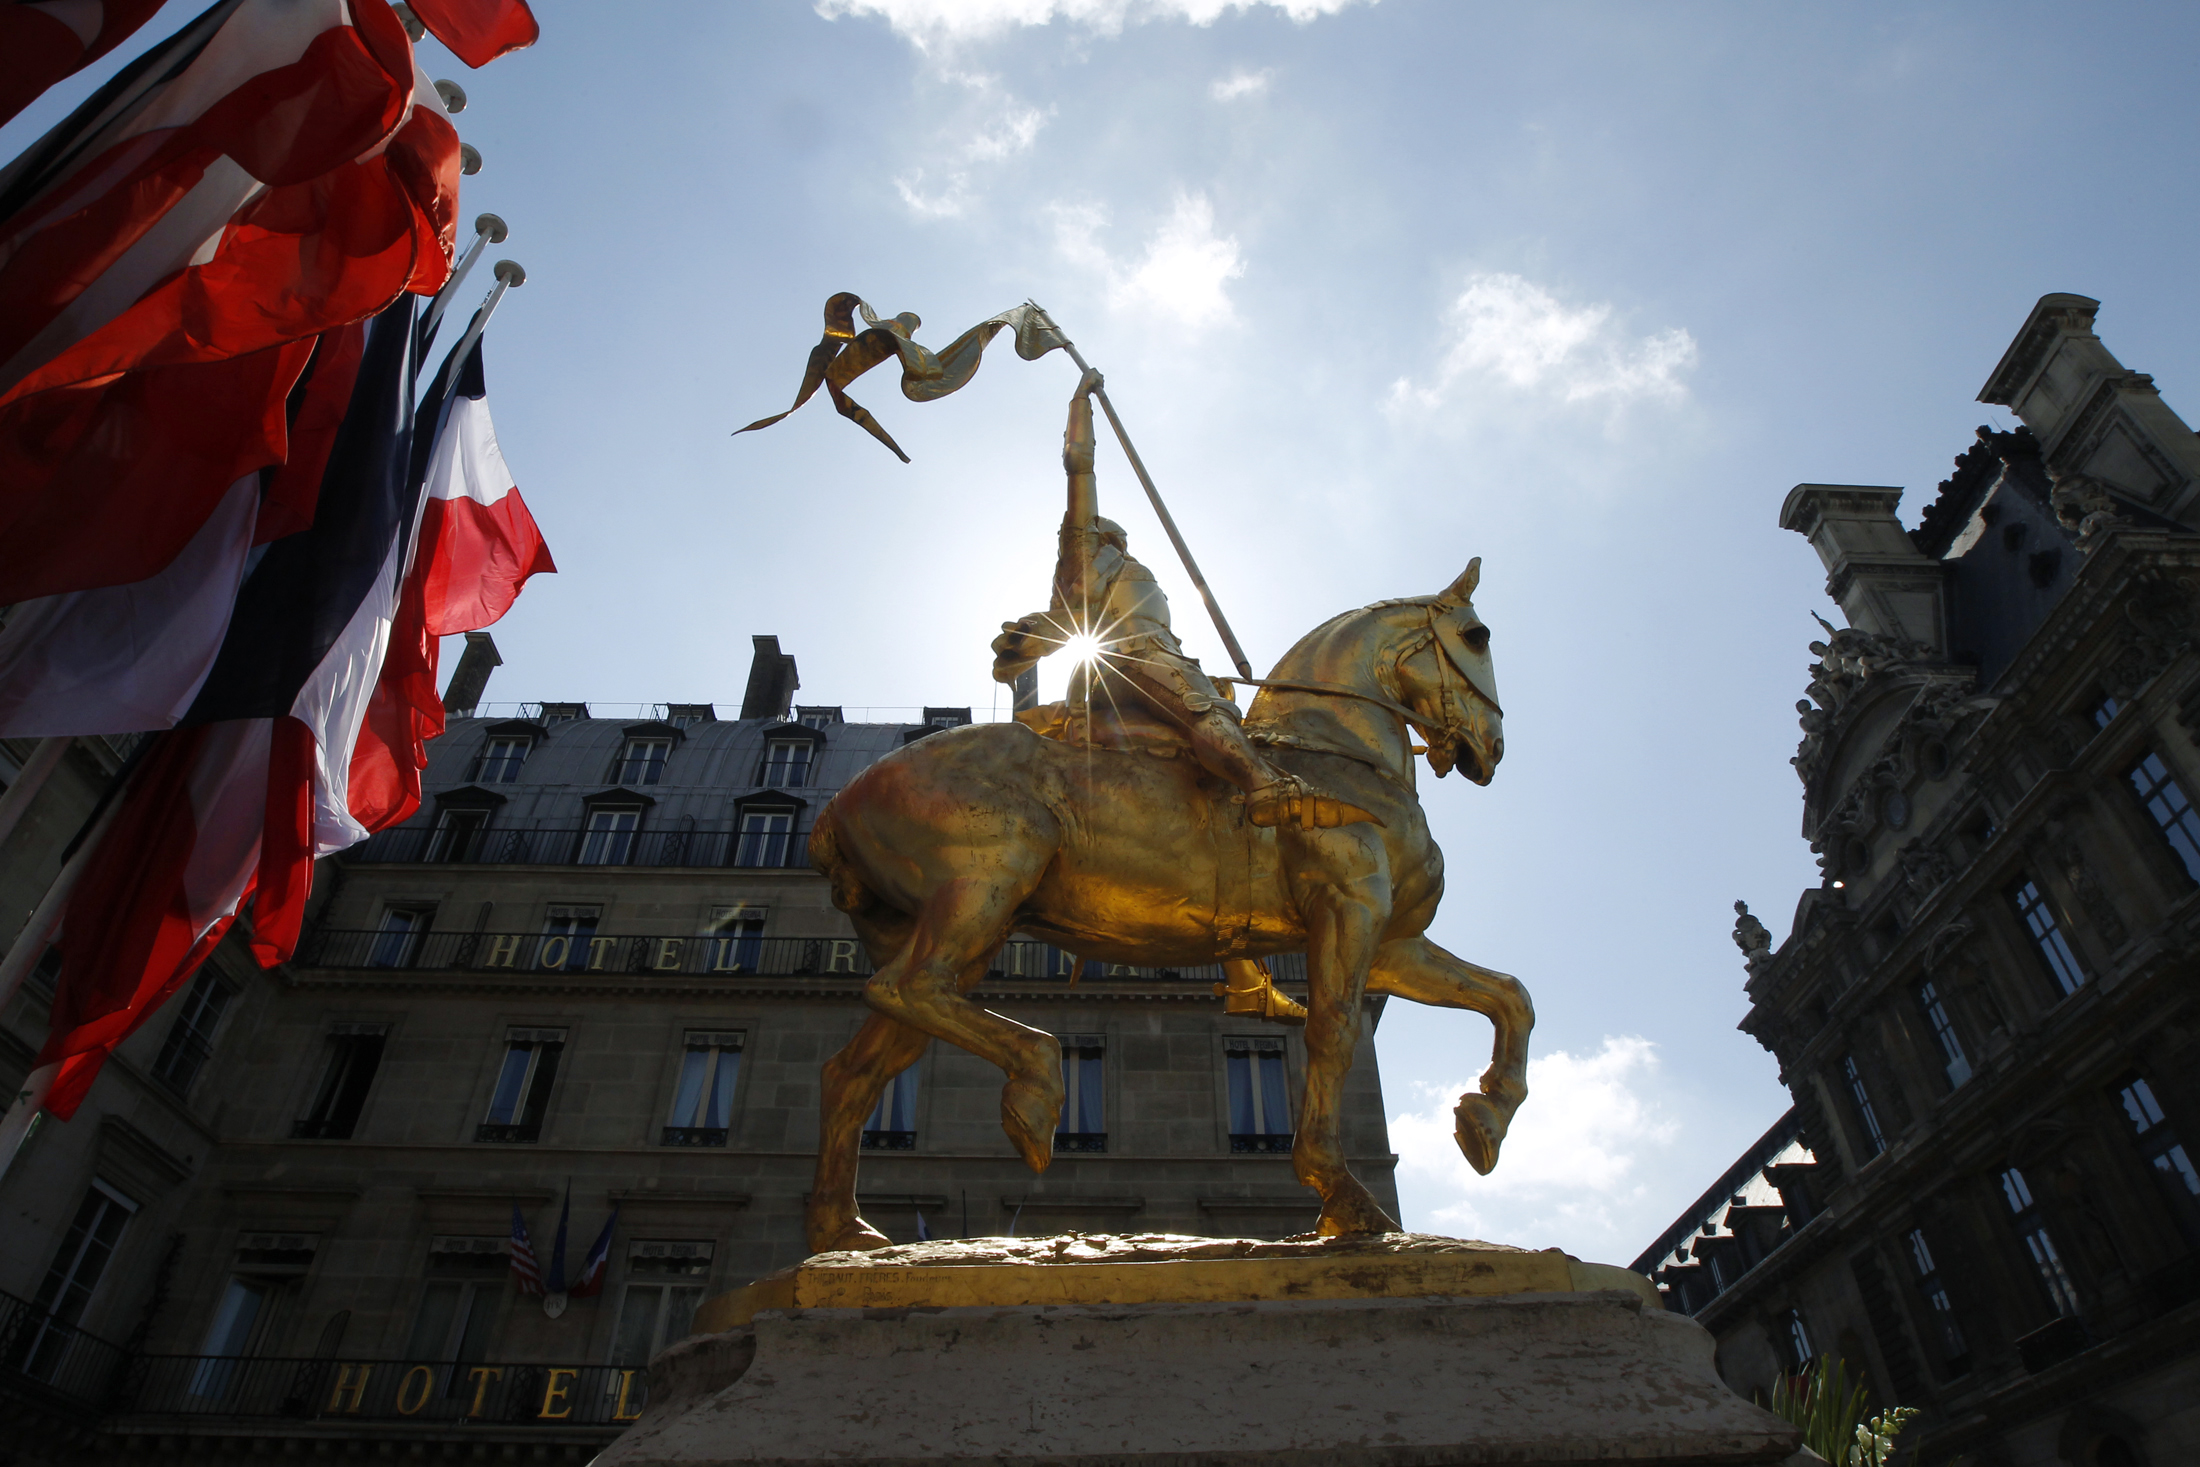 What really caused the voices in Joan of Arc's head?